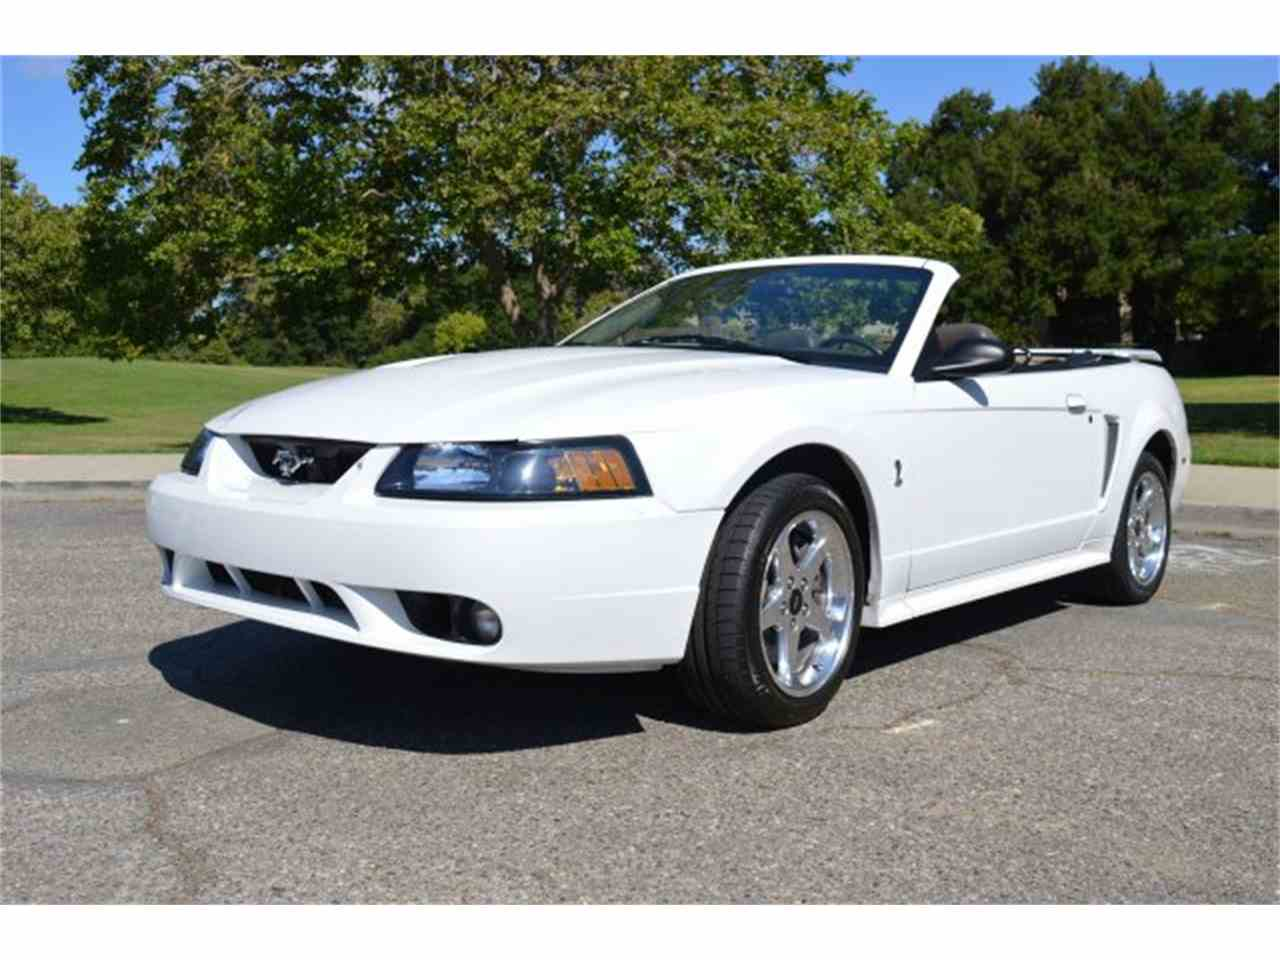 2001 ford mustang svt cobra convertible for sale. Black Bedroom Furniture Sets. Home Design Ideas